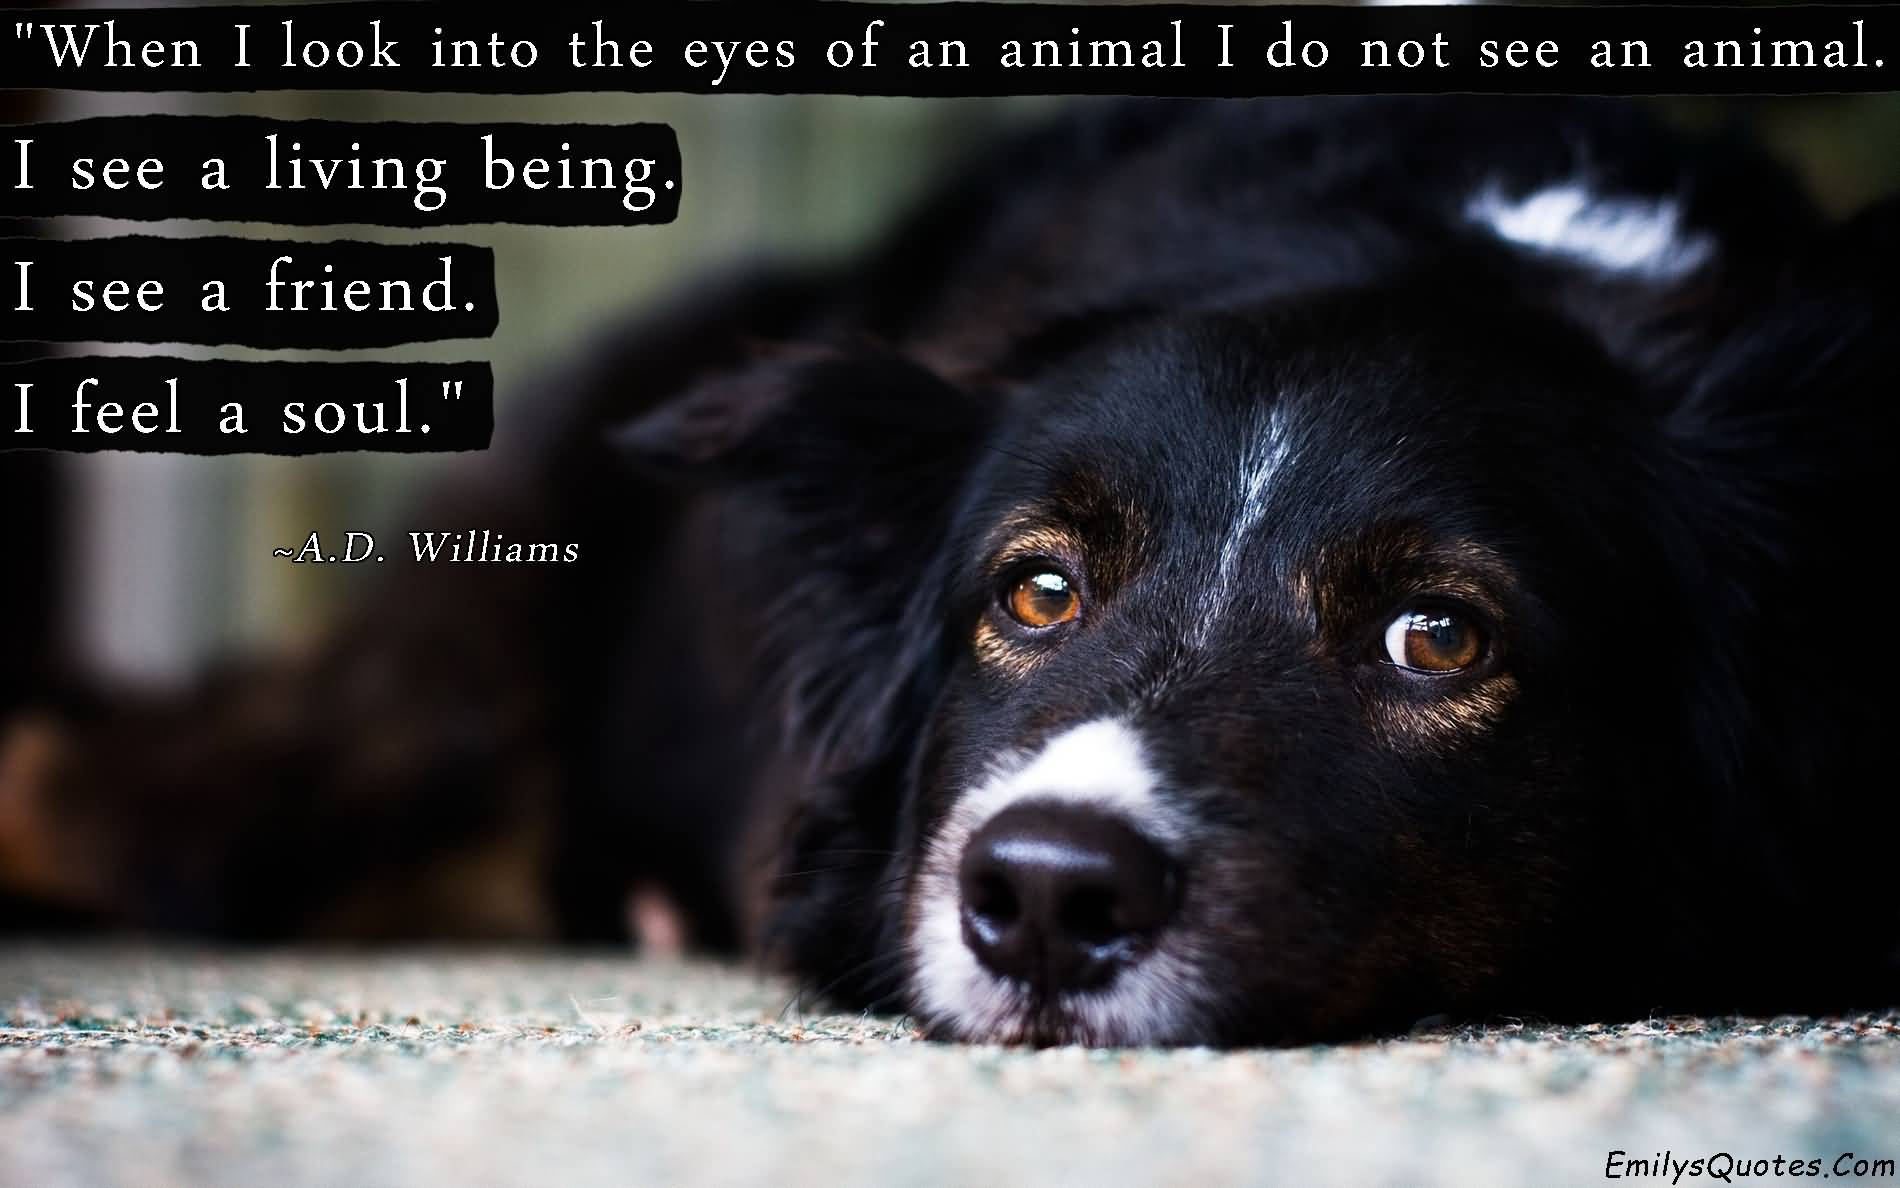 When i look into the eyes of an animal - A.D. Williams